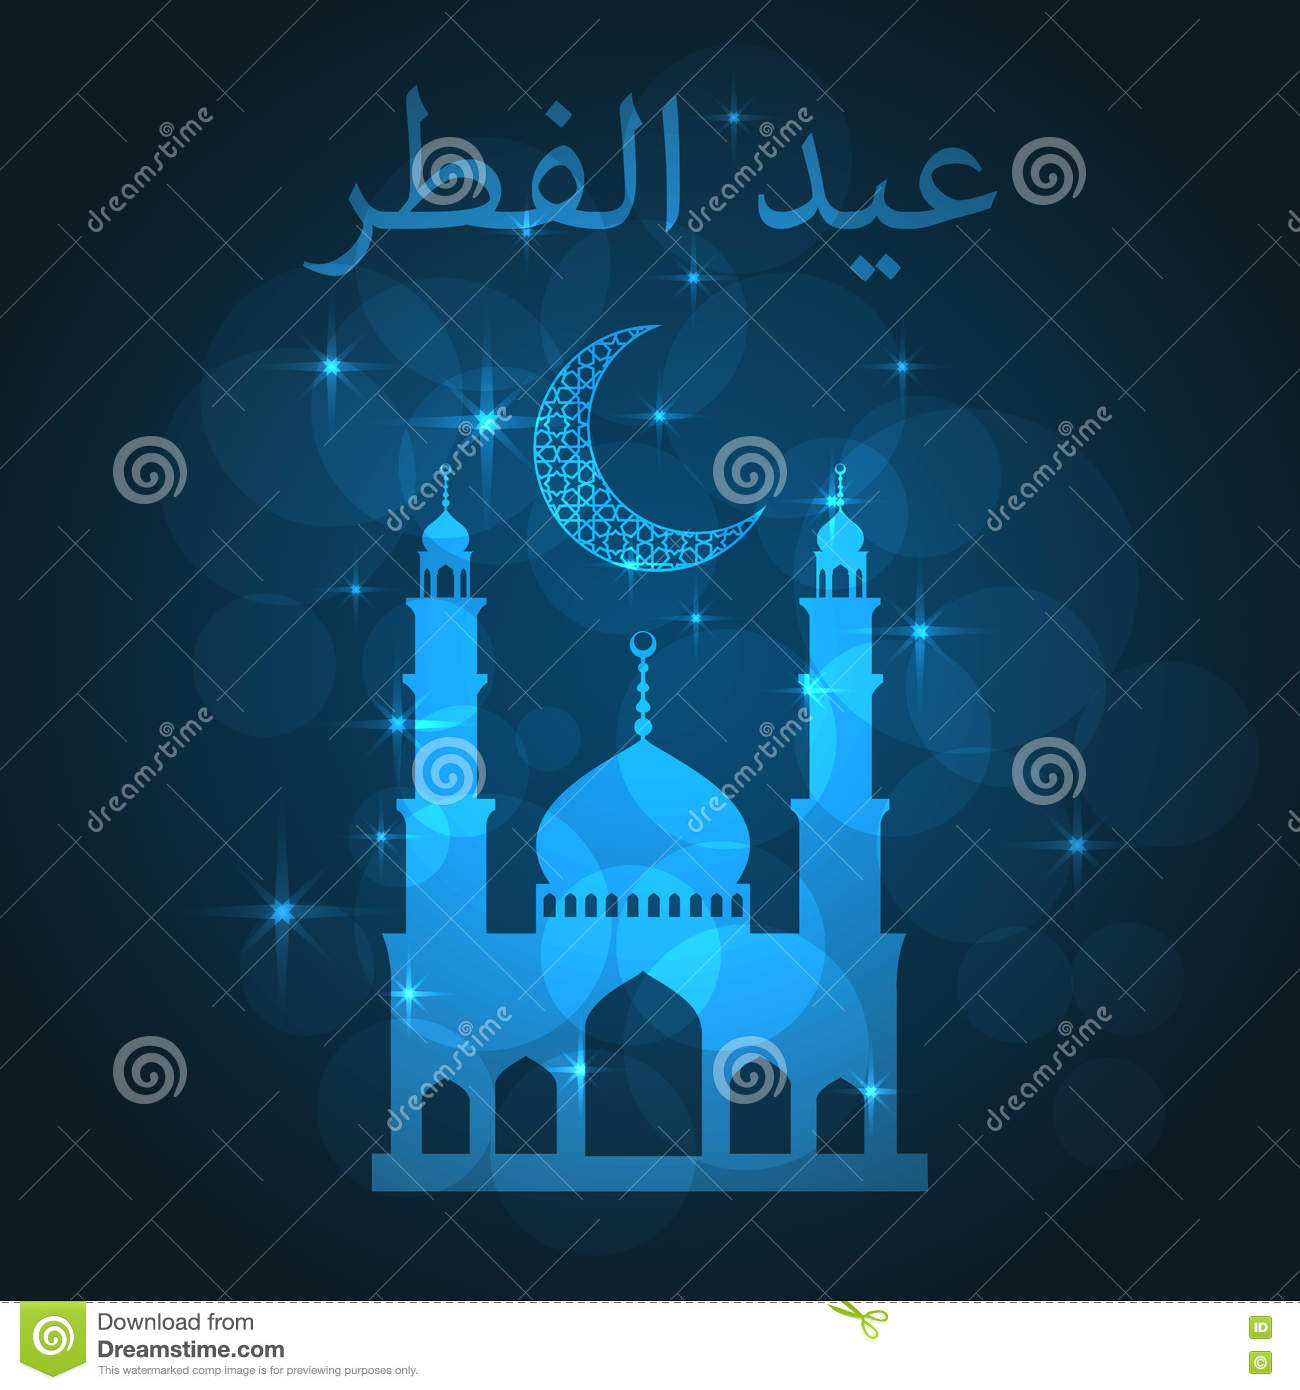 Simple Today Eid Al-Fitr Greeting - eid-al-fitr-greeting-card-blue-background-vector-illustration-means-festival-breaking-fast-73124532  You Should Have_472876 .jpg